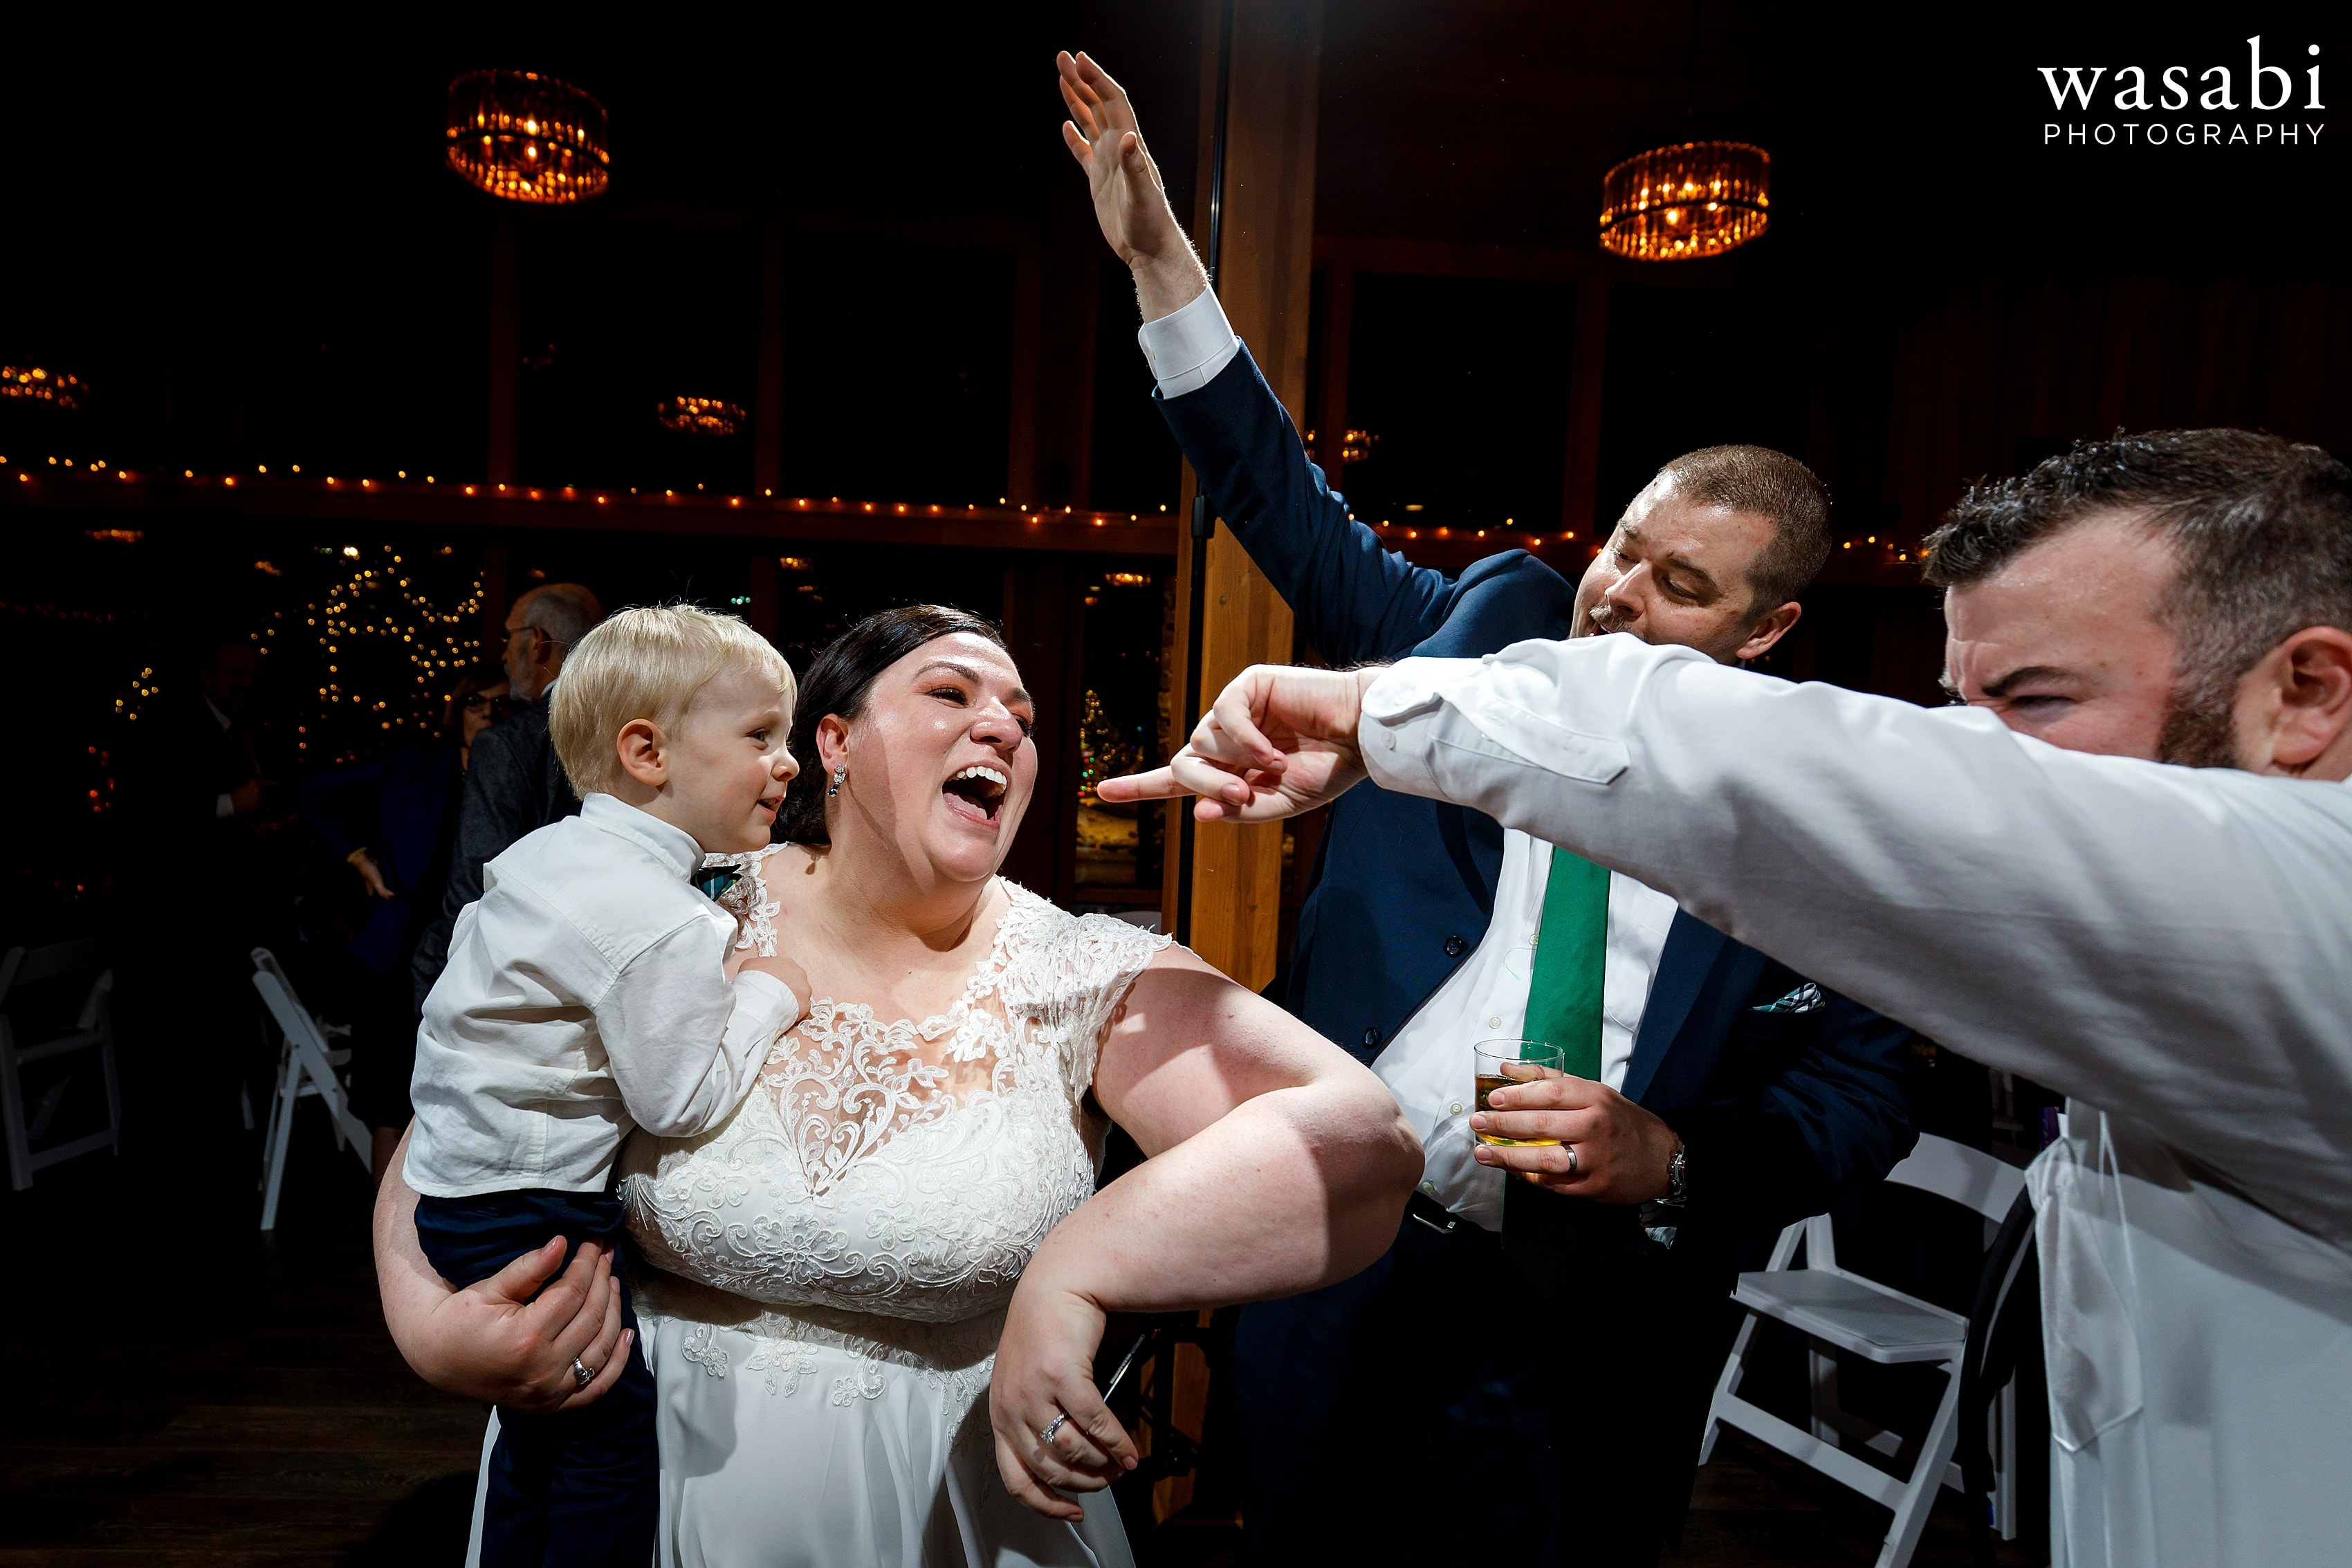 bride and groom dance with ring bearer during wedding reception at Oak Brook Bath and Tennis Club